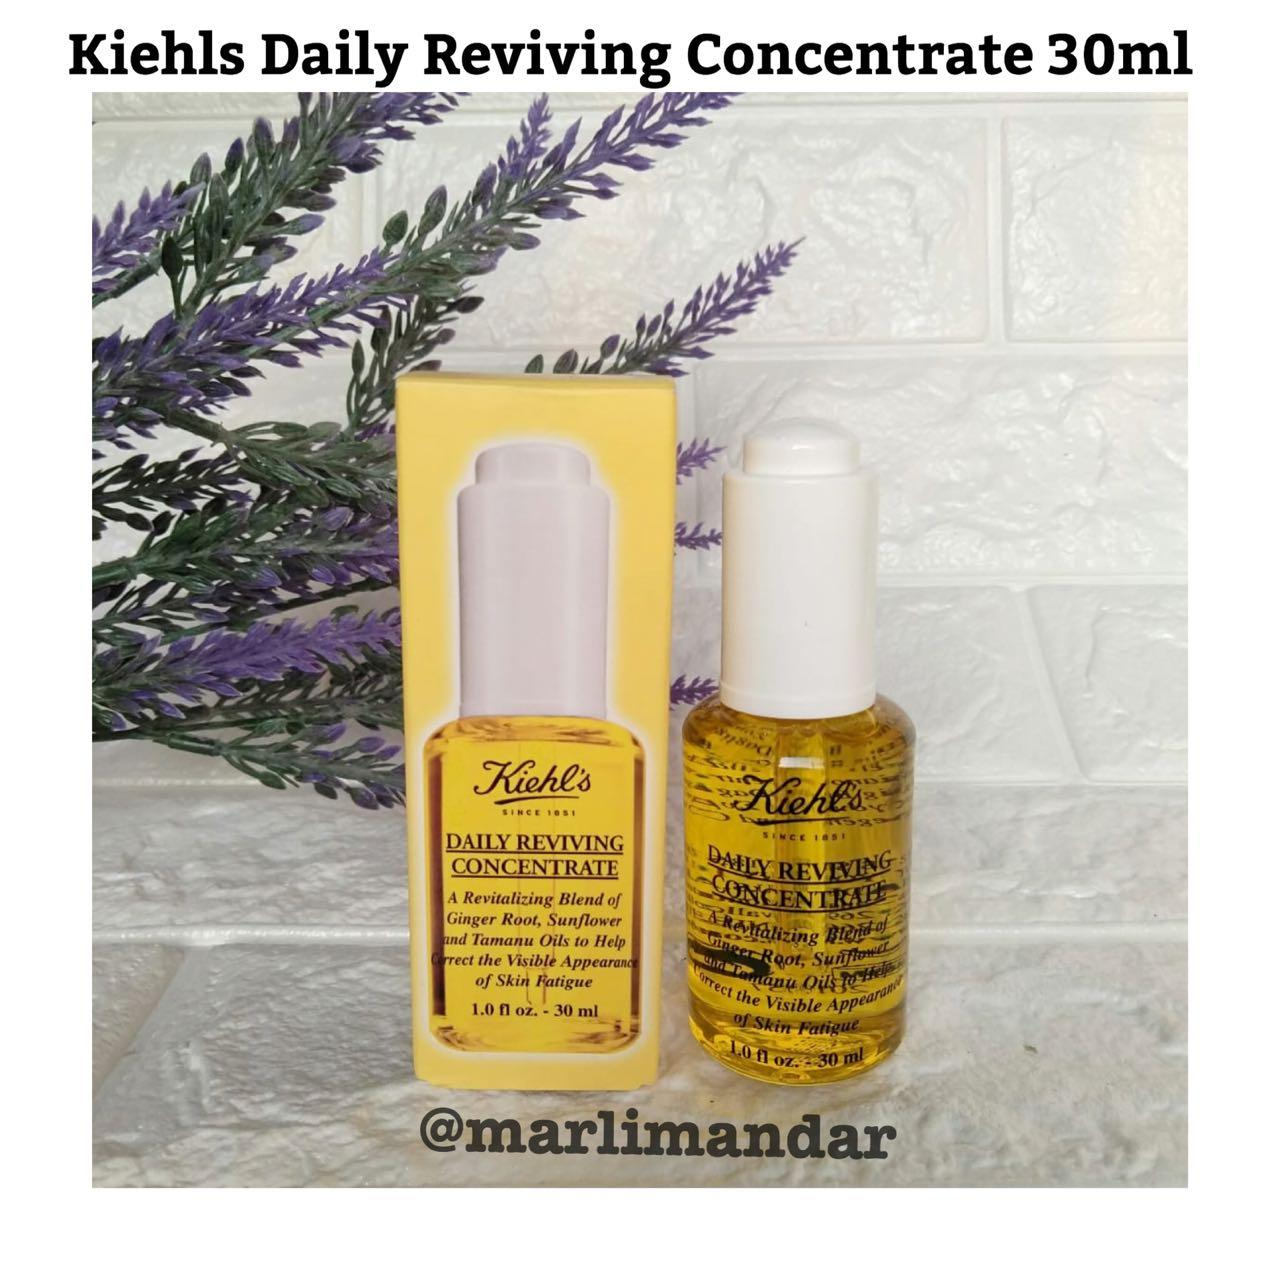 Kelebihan Kiehls Clearly Corrective Dark Spot Solutions 30ml Ccds Skin Brightening Exfoliator 25ml Daily Reviving Concentrate Drc